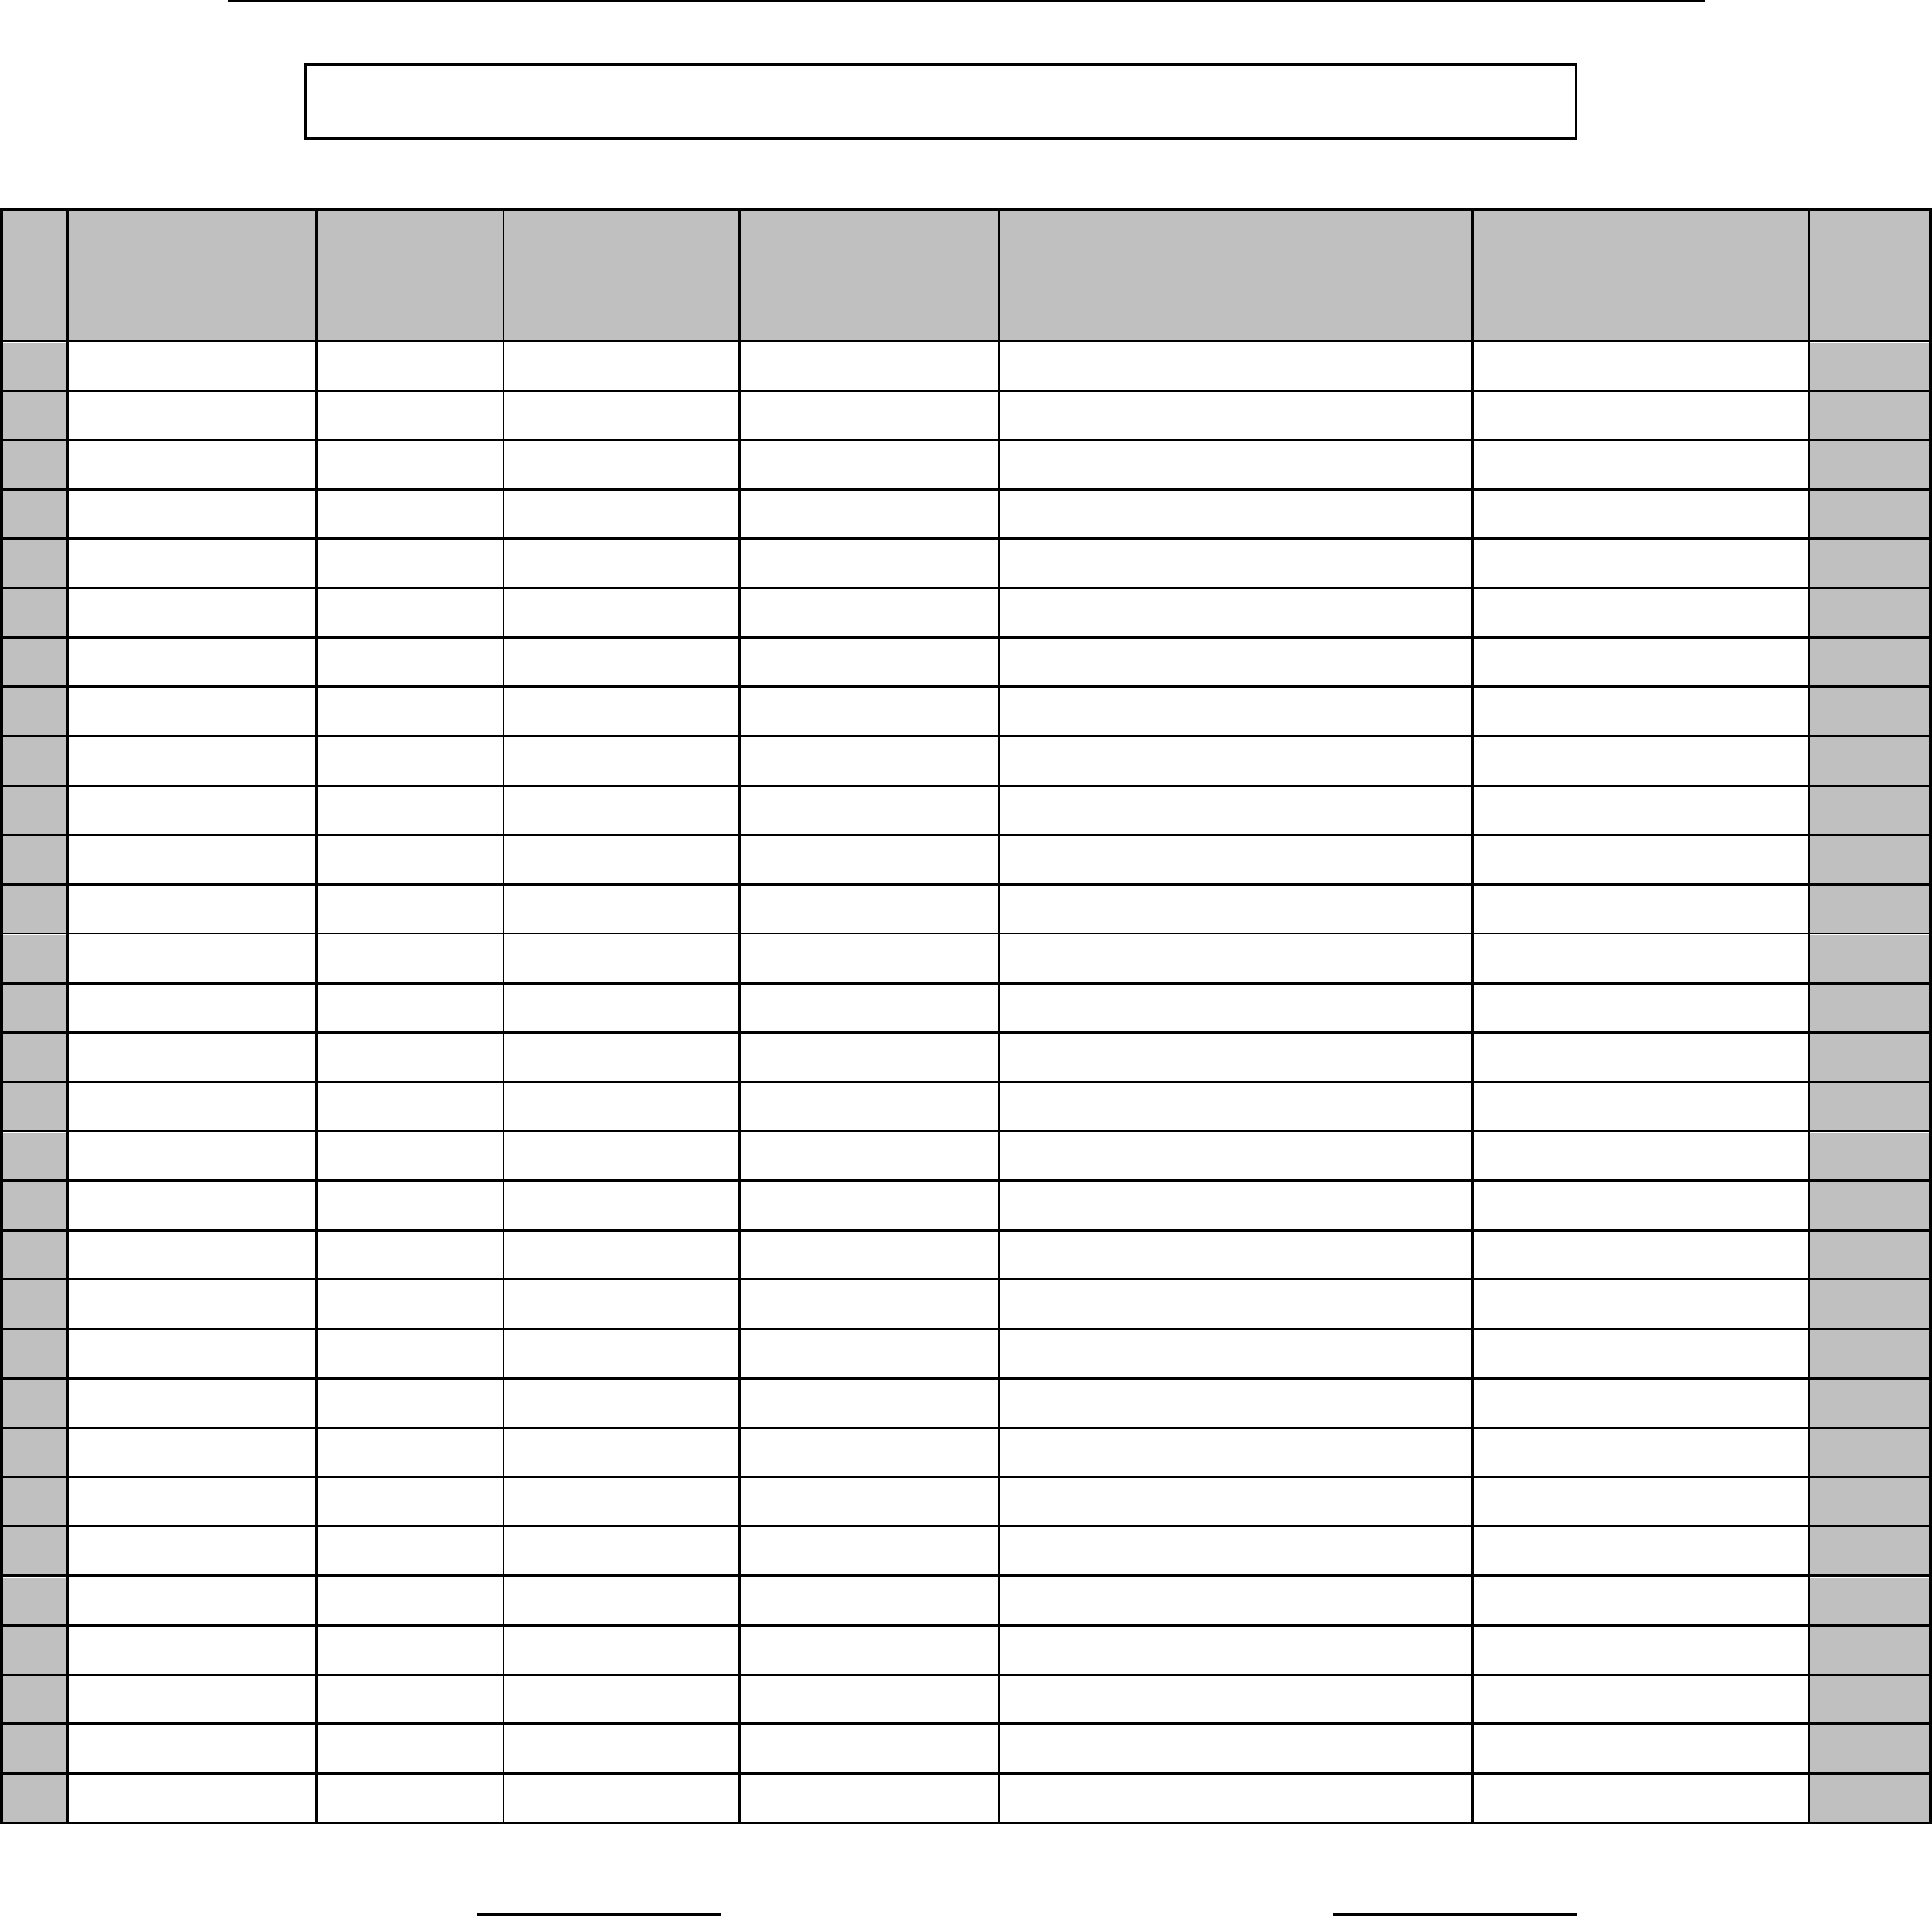 Doc895629 Blank Roster blank roster 64 Related Docs – Blank Roster Template